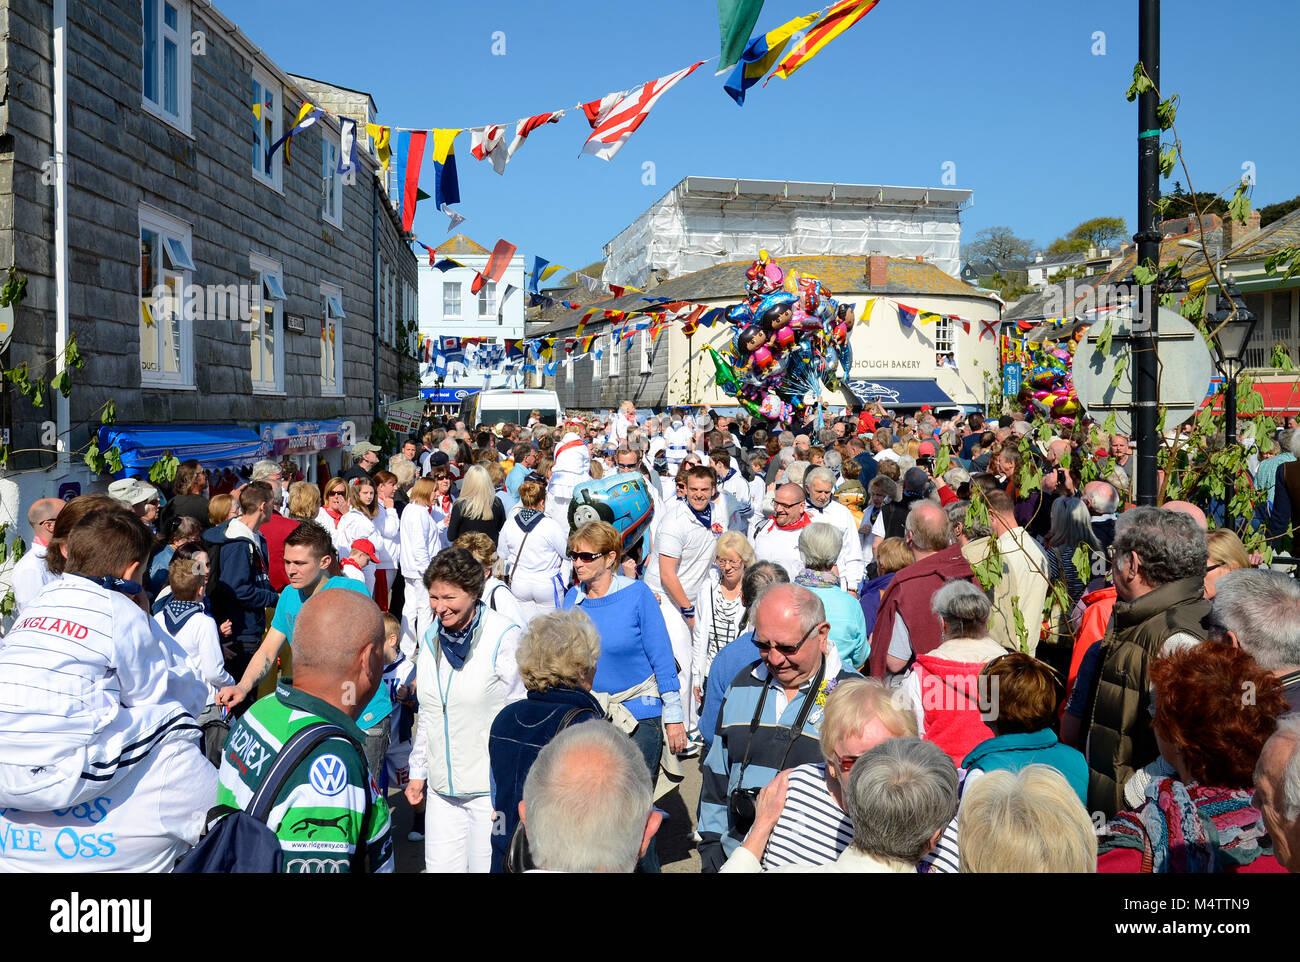 """the streets of padstow in cornwall, england, uk, are crowded with revellers during the annual may day """"obby oss"""" - Stock Image"""